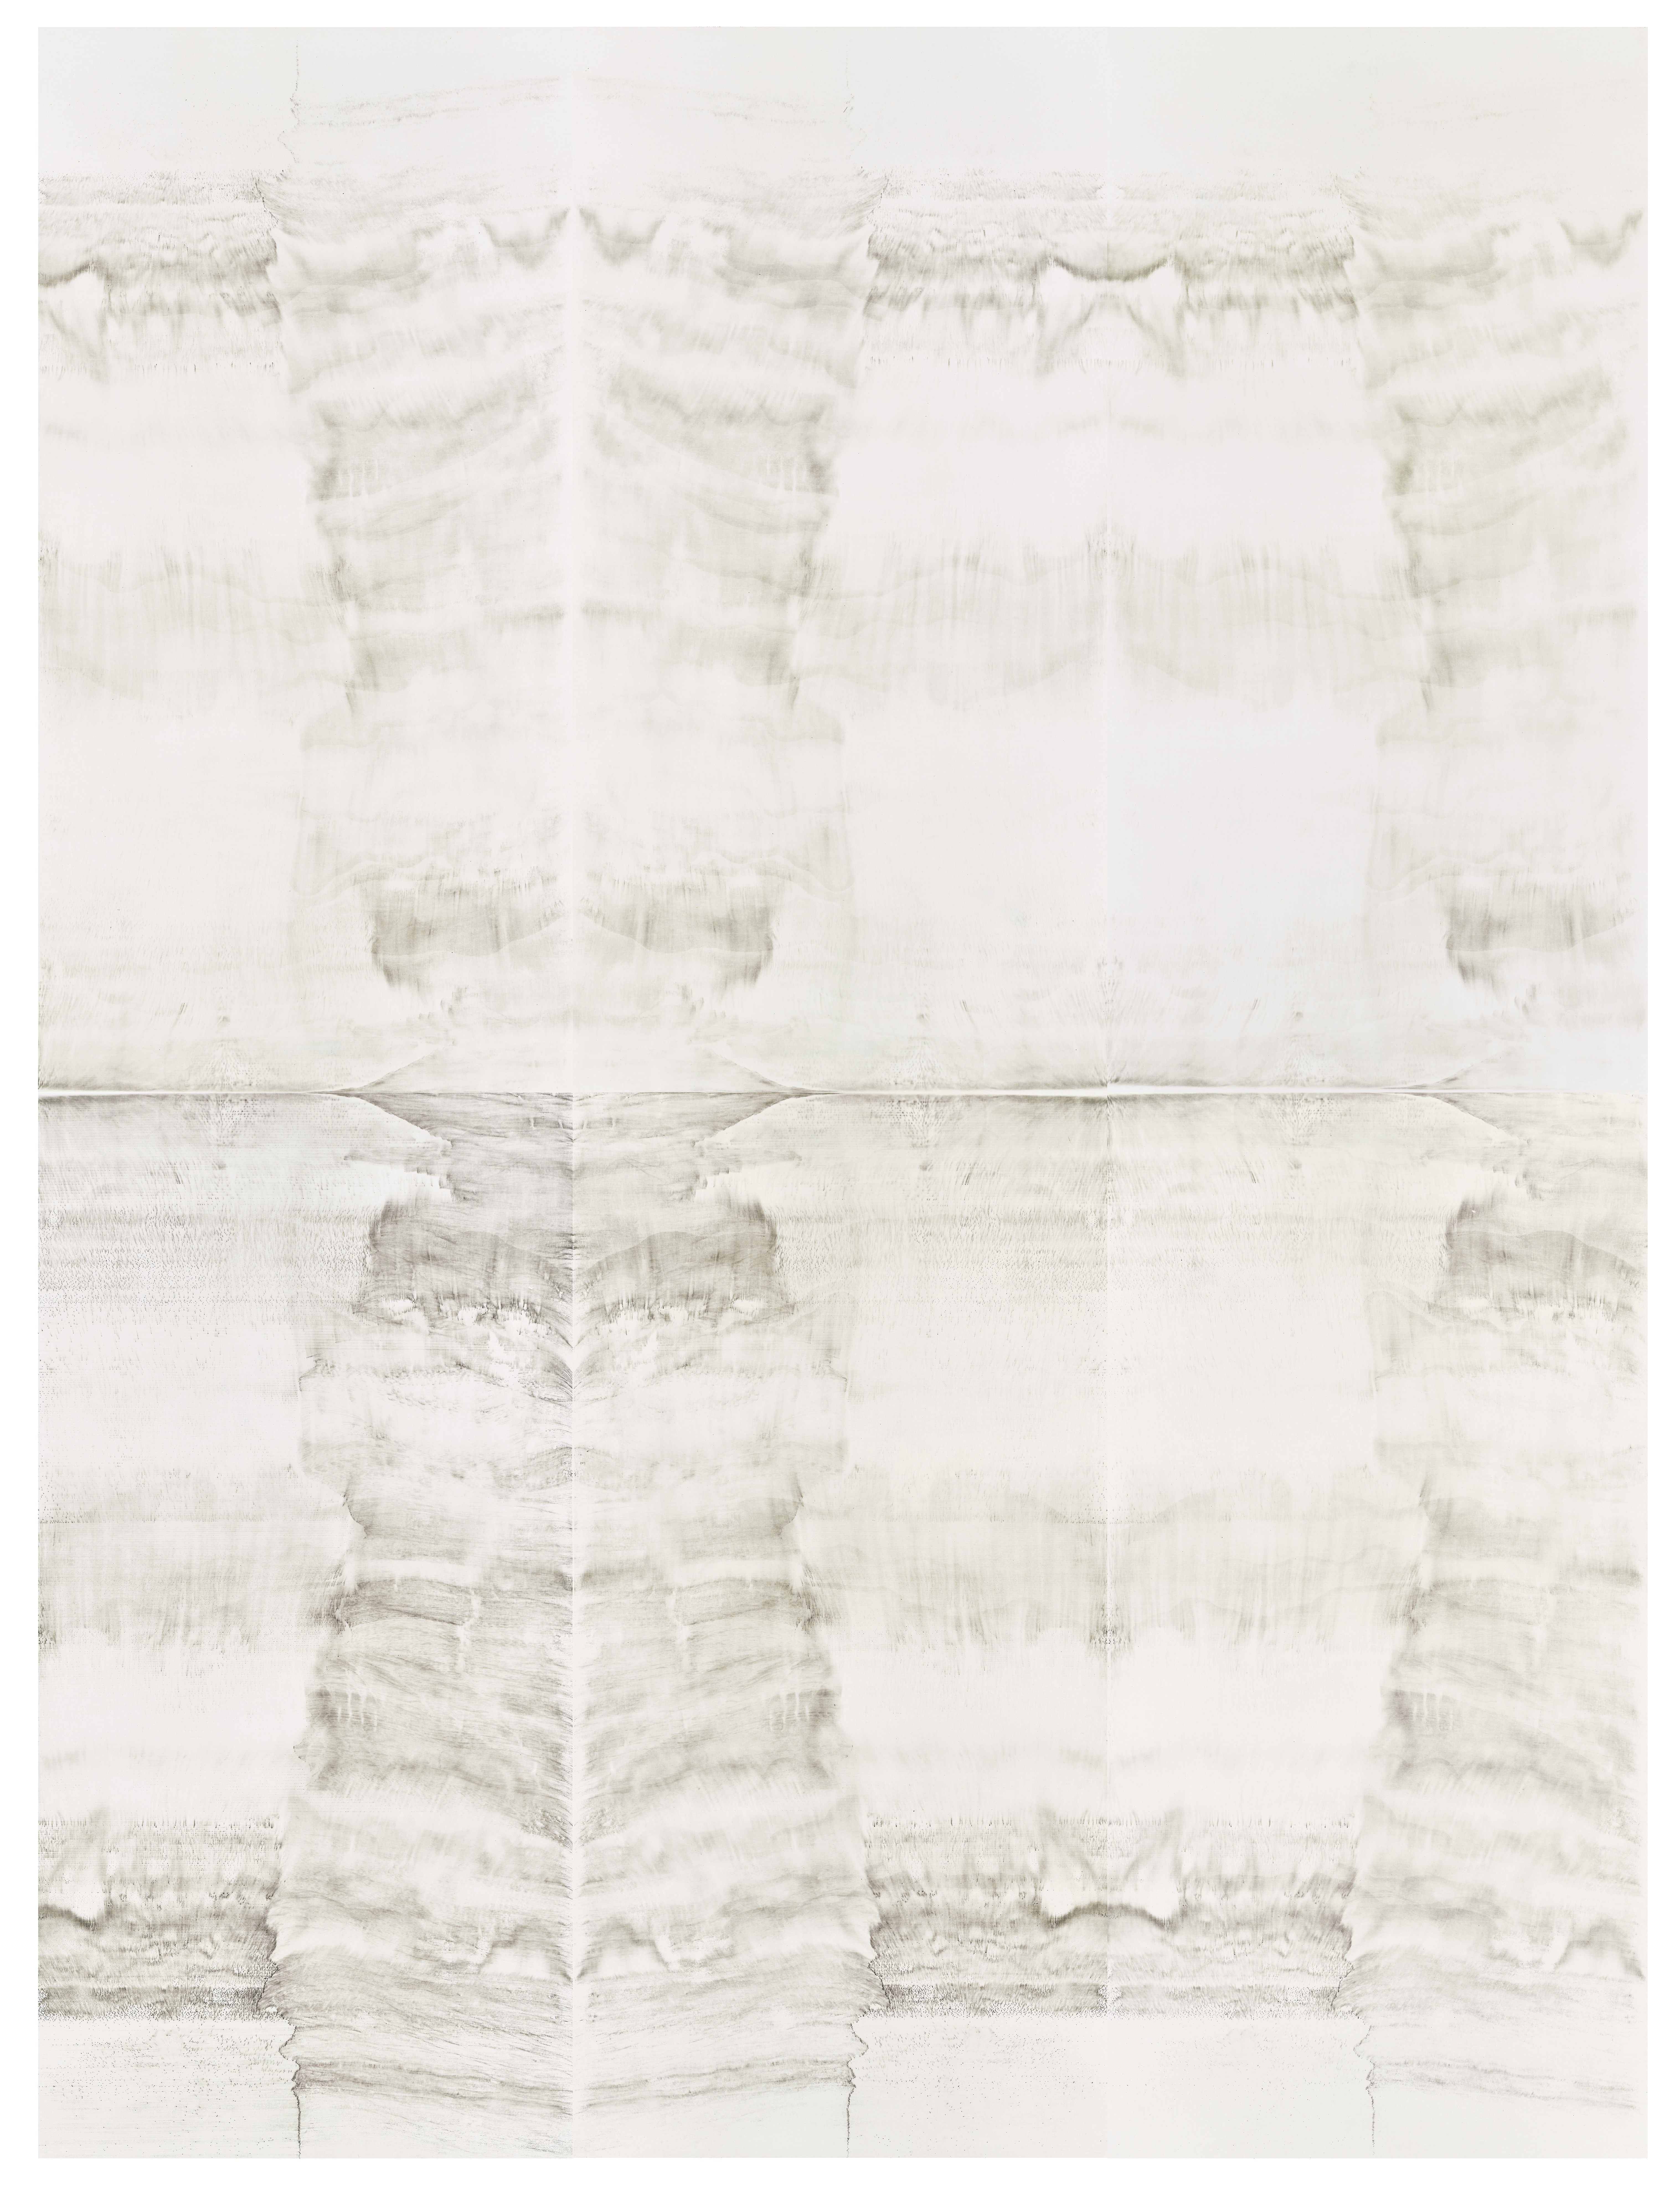 Hung Fai and Wai Pong Yu, Same Line Twice 2 (ii), 205.8 cm (width) x 274.4 cm (height), pigmented ink on paper, 2016